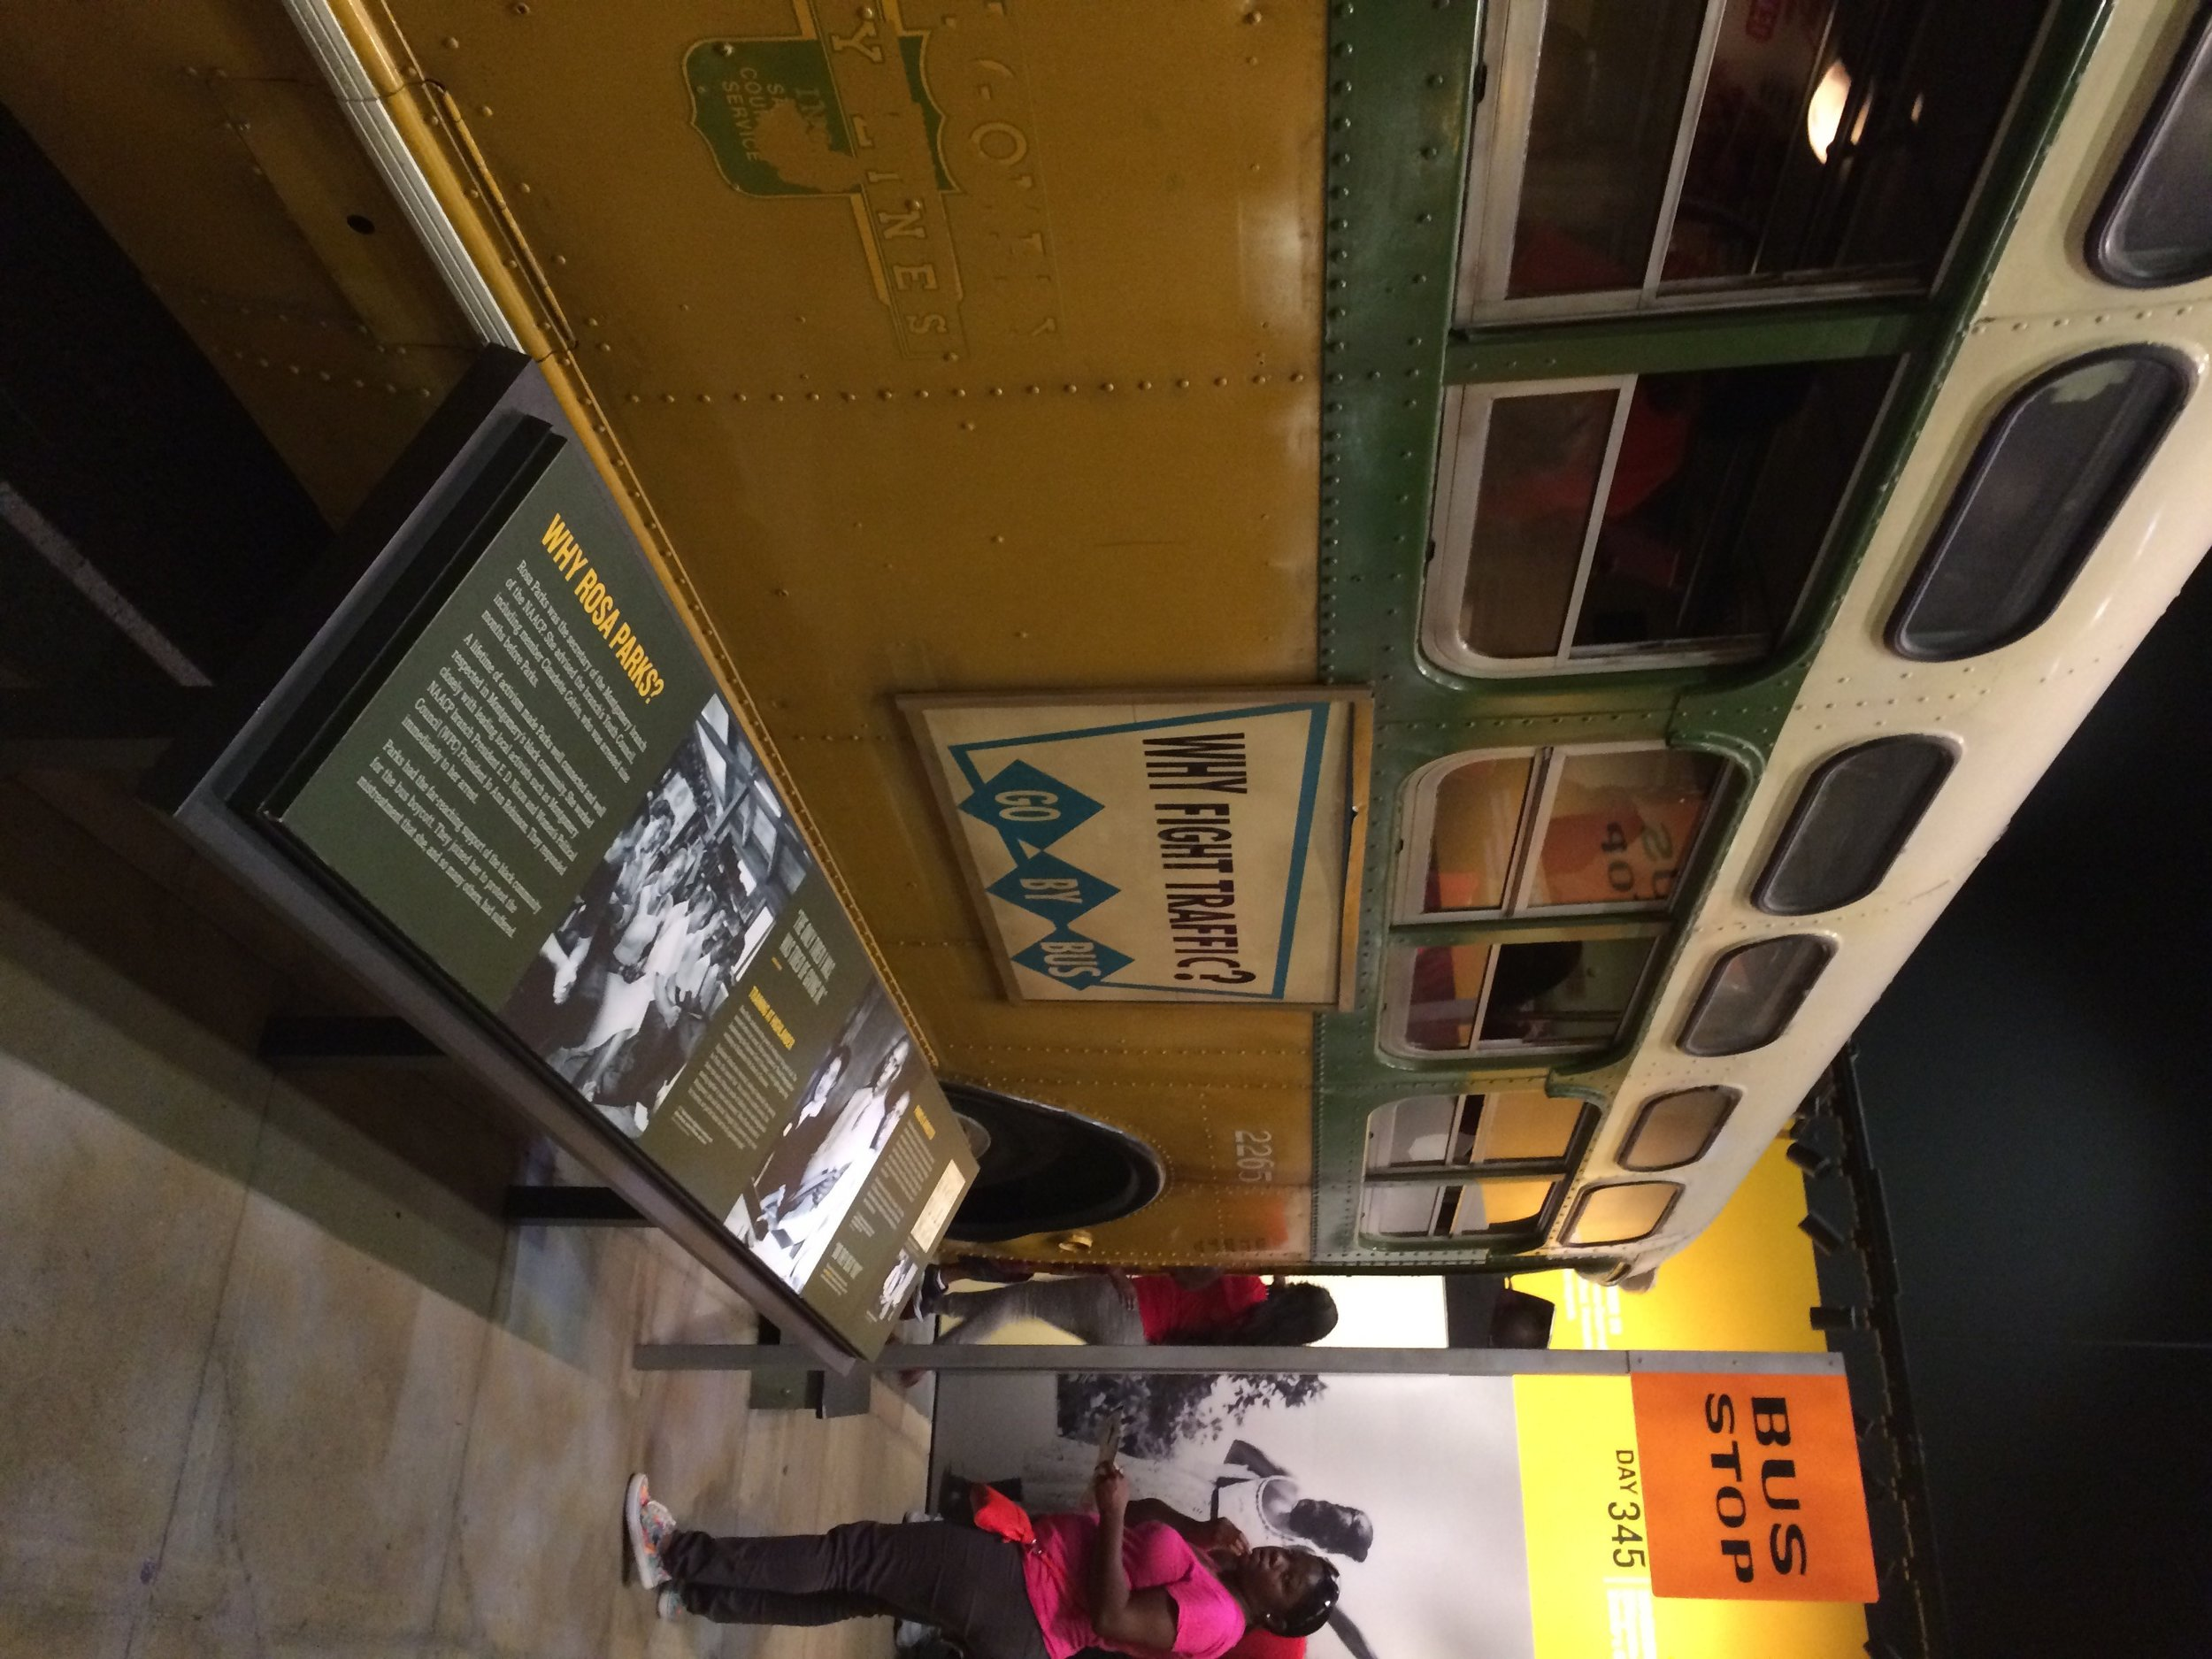 An image of a bus inside the Montgomery Bus Boycott exhibit in the National Civil Rights Museum at the Lorraine Motel in Memphis